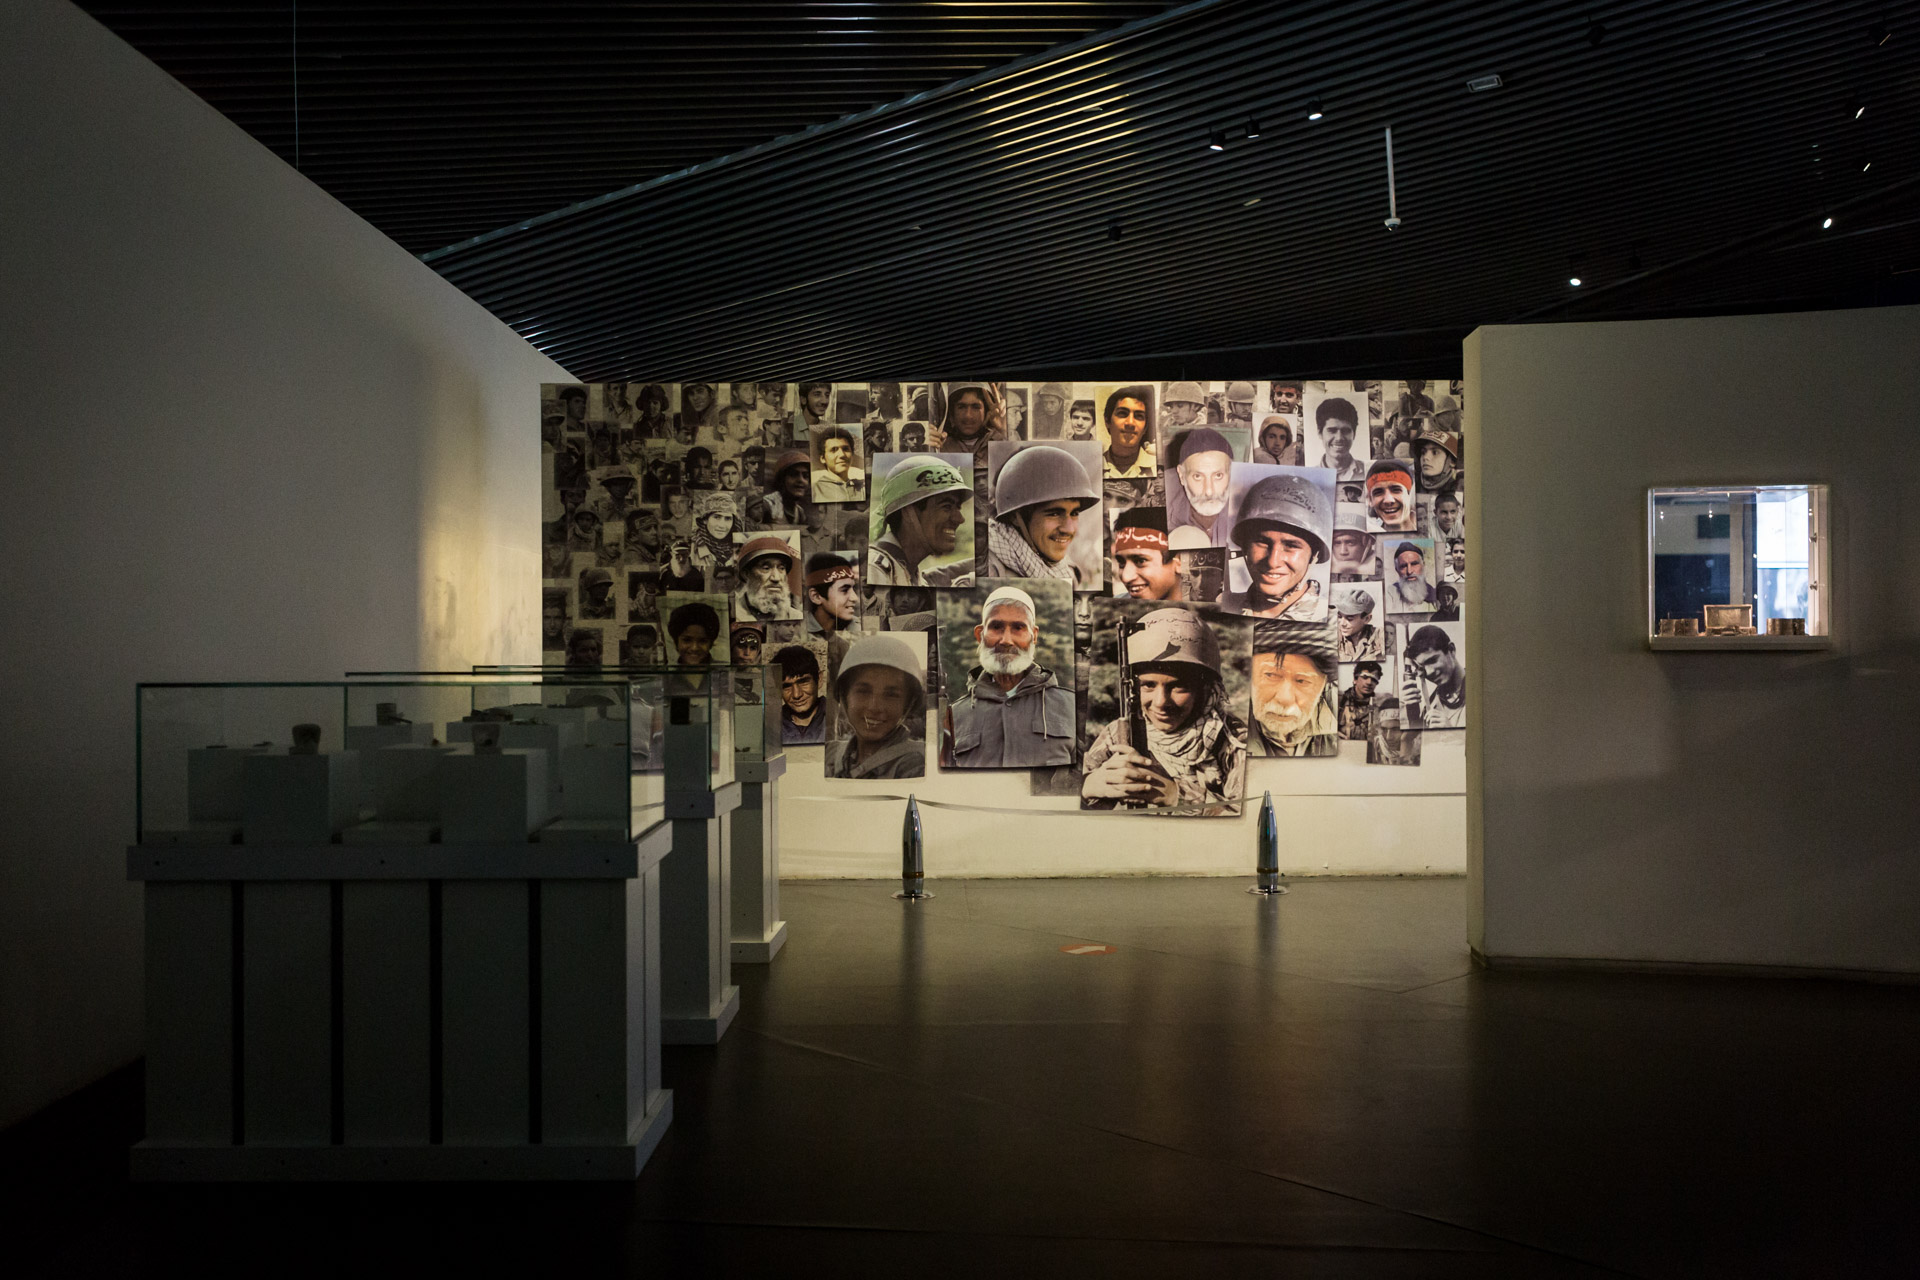 Designated for very old and very young participants of the war, a special room awaits visitors. According to museum information, Islam forbids to enlist young and old people in a war. If they are eager to participate though, one must not hold them back.